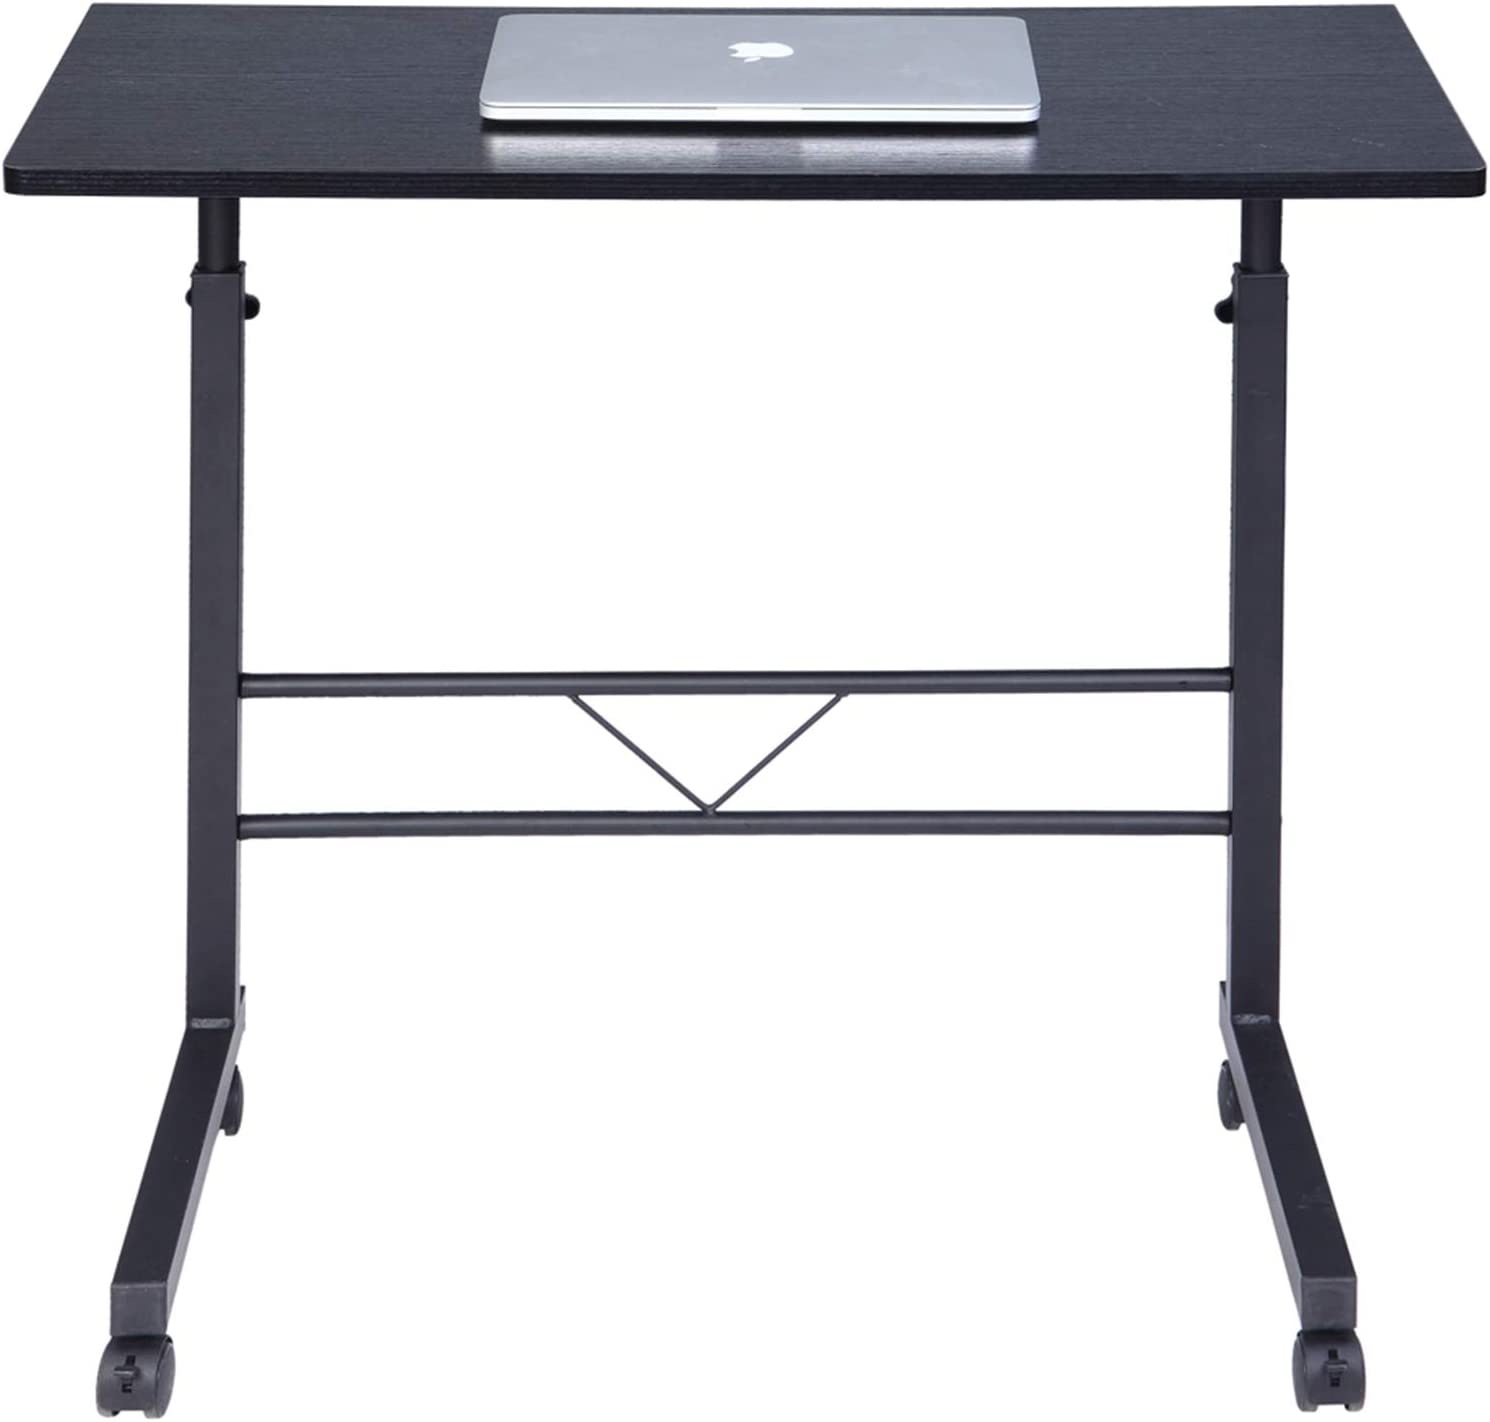 NEW before selling Large-Size Portable Multi-Purpose Computer Desk Direct store - Beech Baffle C